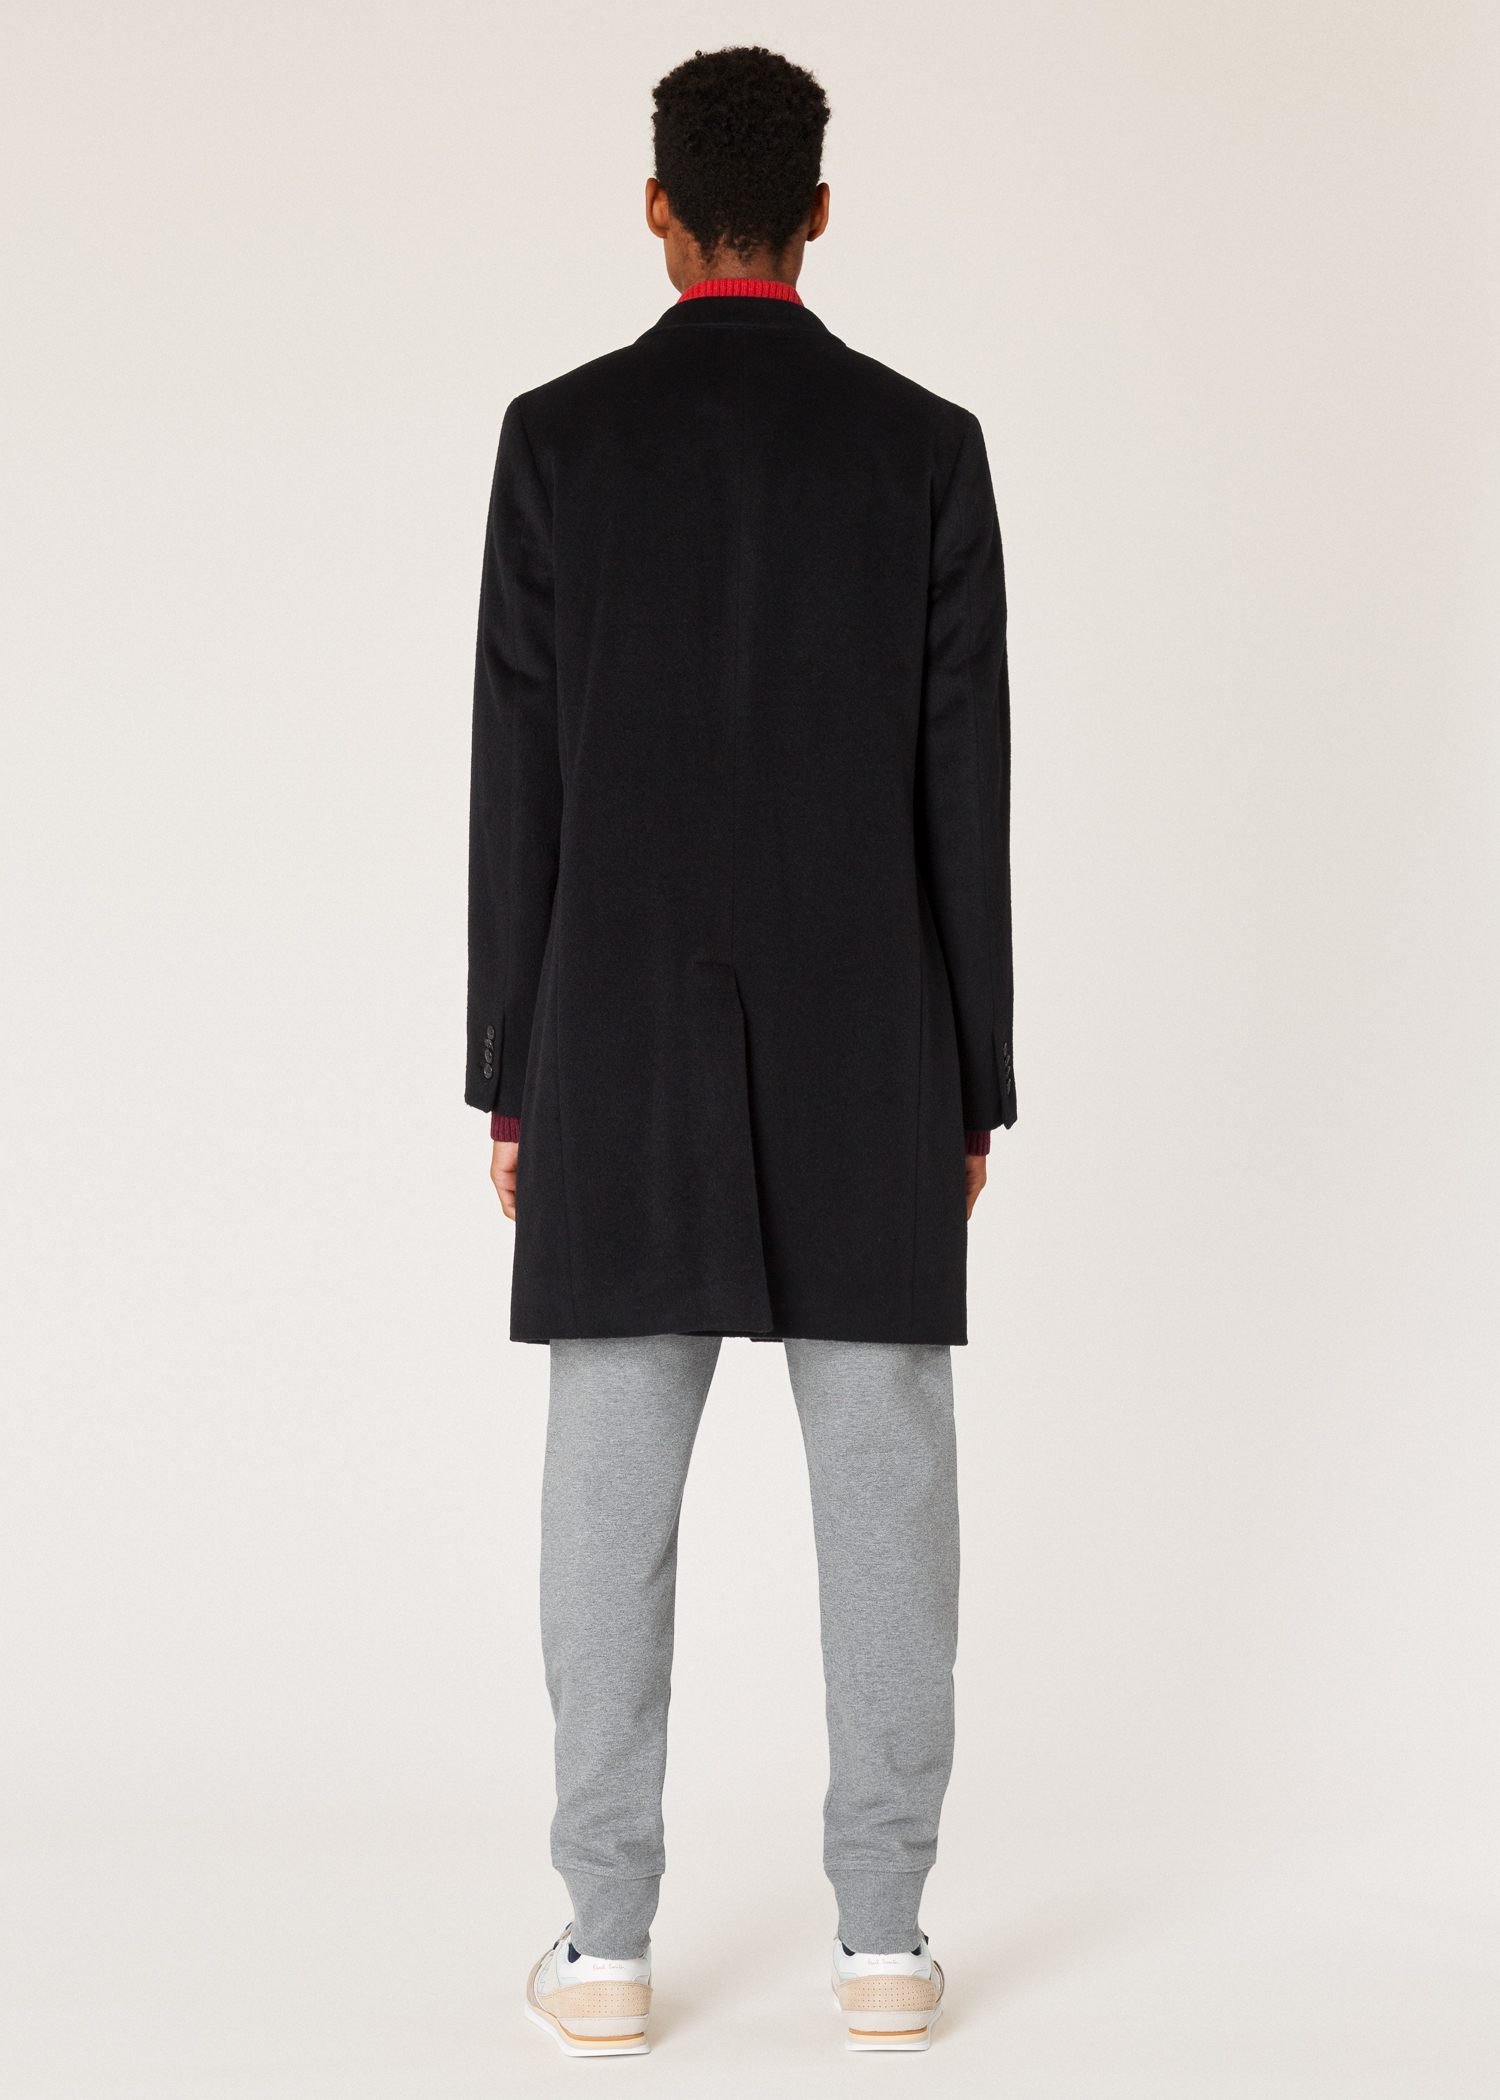 79336c43eb9 Men s Black Alpaca-Wool Blend Overcoat - Paul Smith US